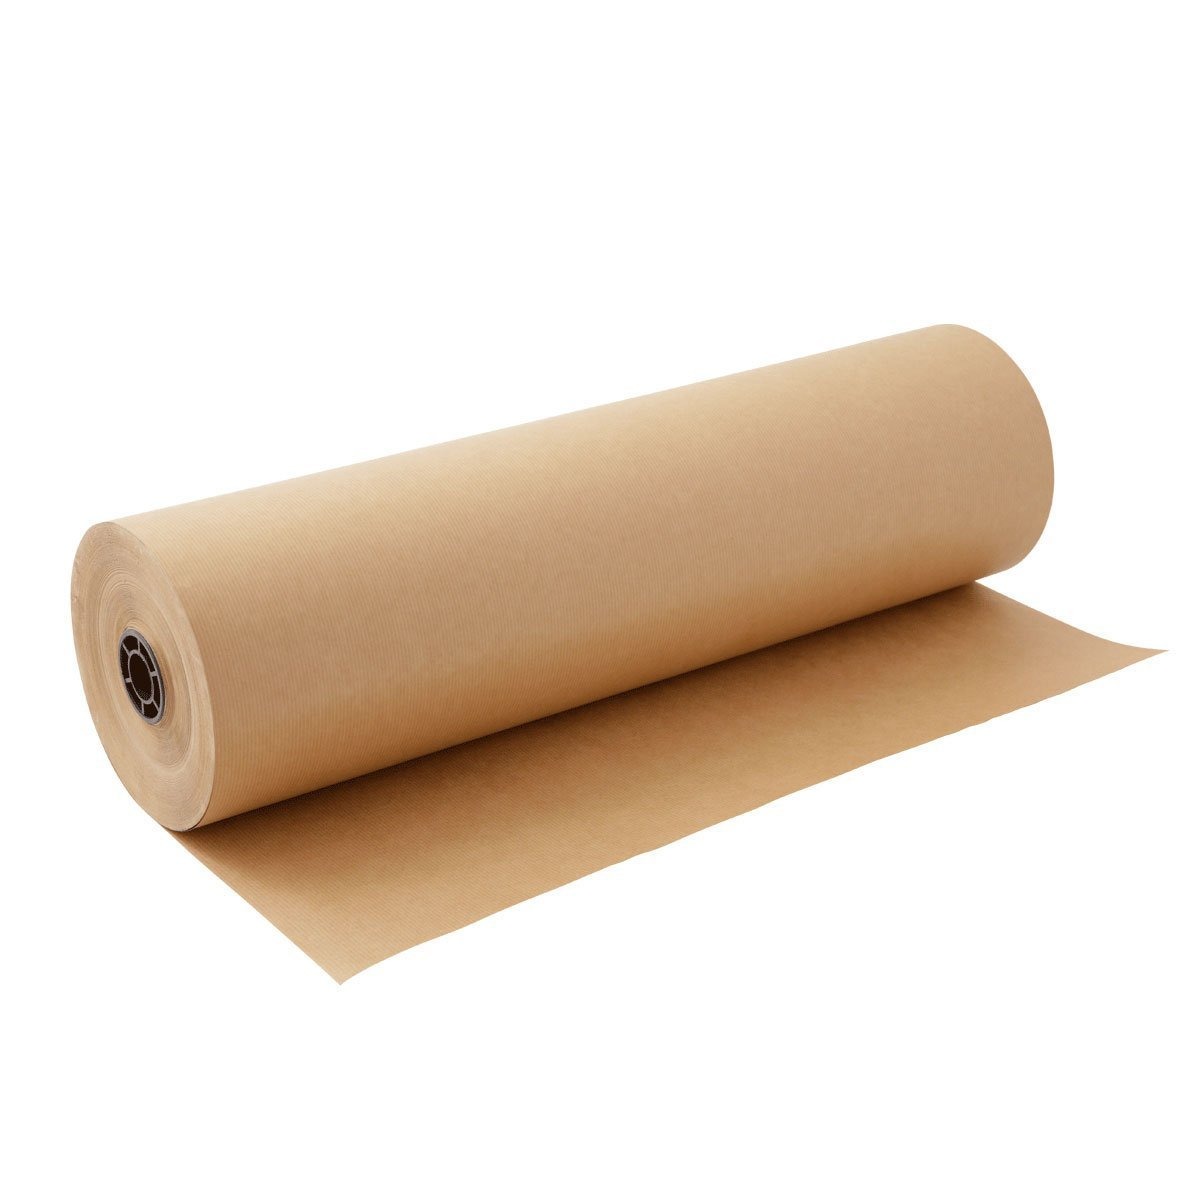 Kraft Paper Roll 30'' X 1800'' (150ft) Brown Mega Roll - Made in Usa 100% Natural Recycled Material - Perfect for Packing, Wrapping, Craft, Postal, Shipping, Dunnage and Parcel by DIY Crew